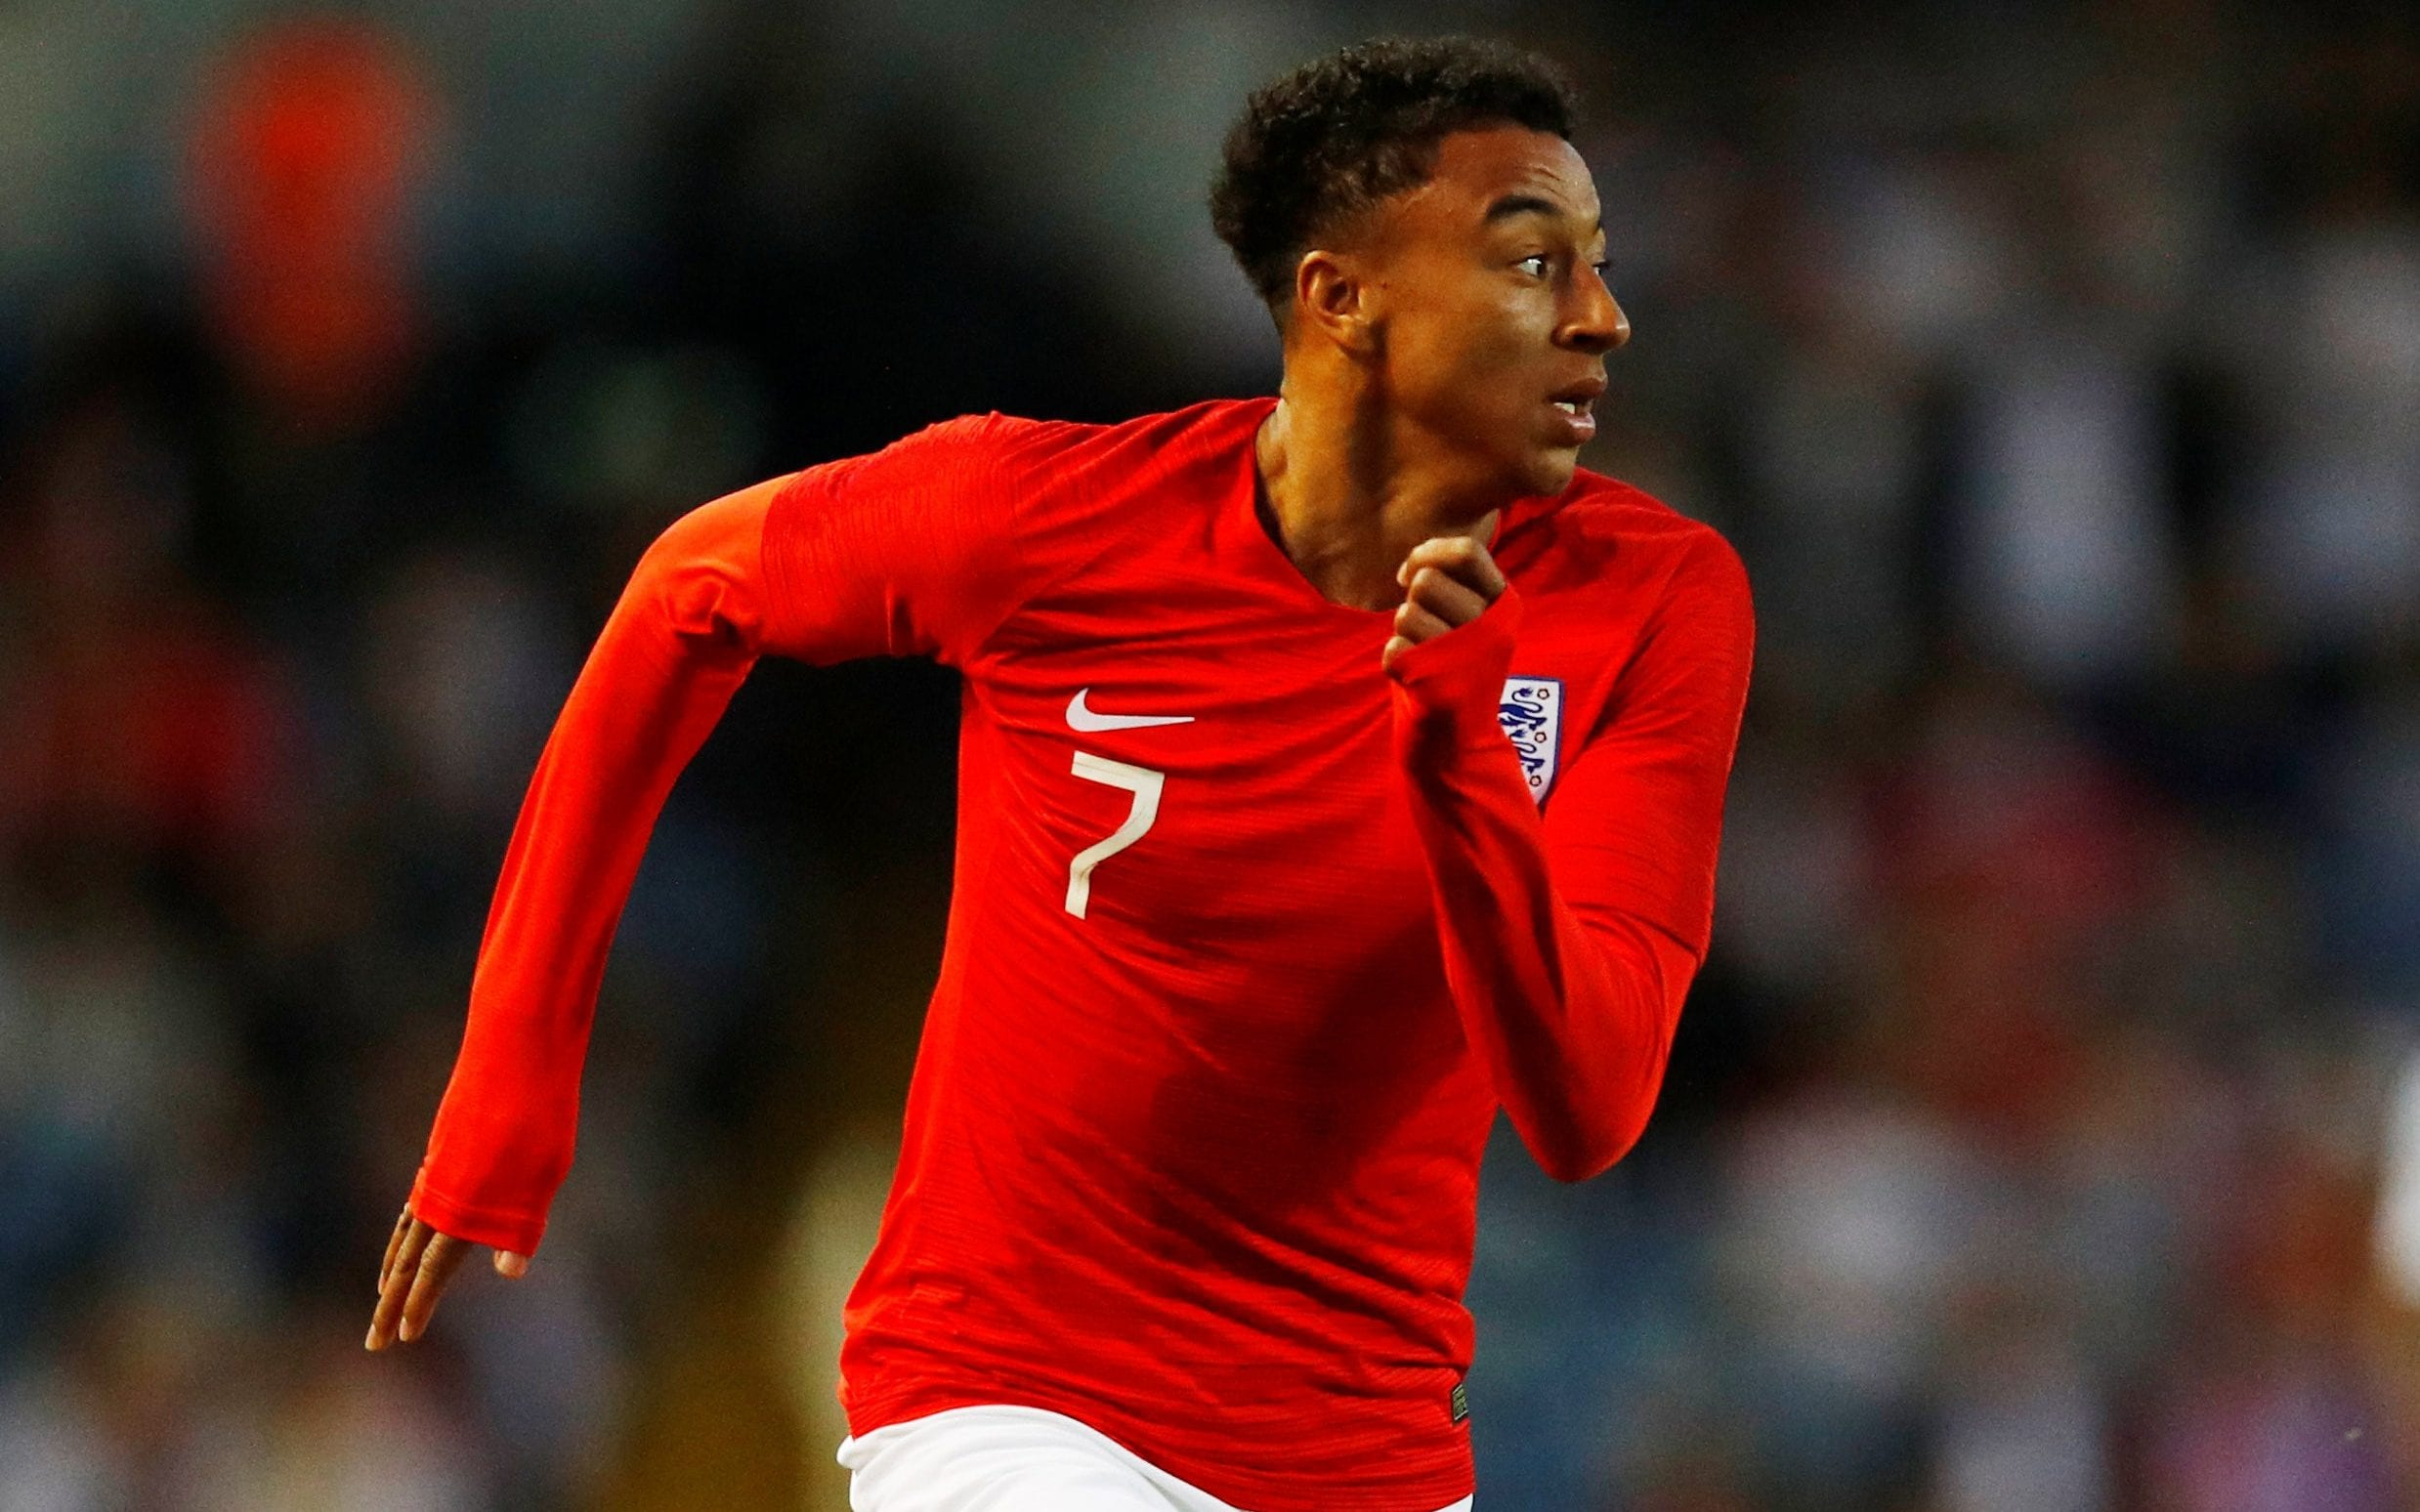 England s Jesse Lingard  the  naughty but funny guy  says he is     Jesse Lingard runs for England